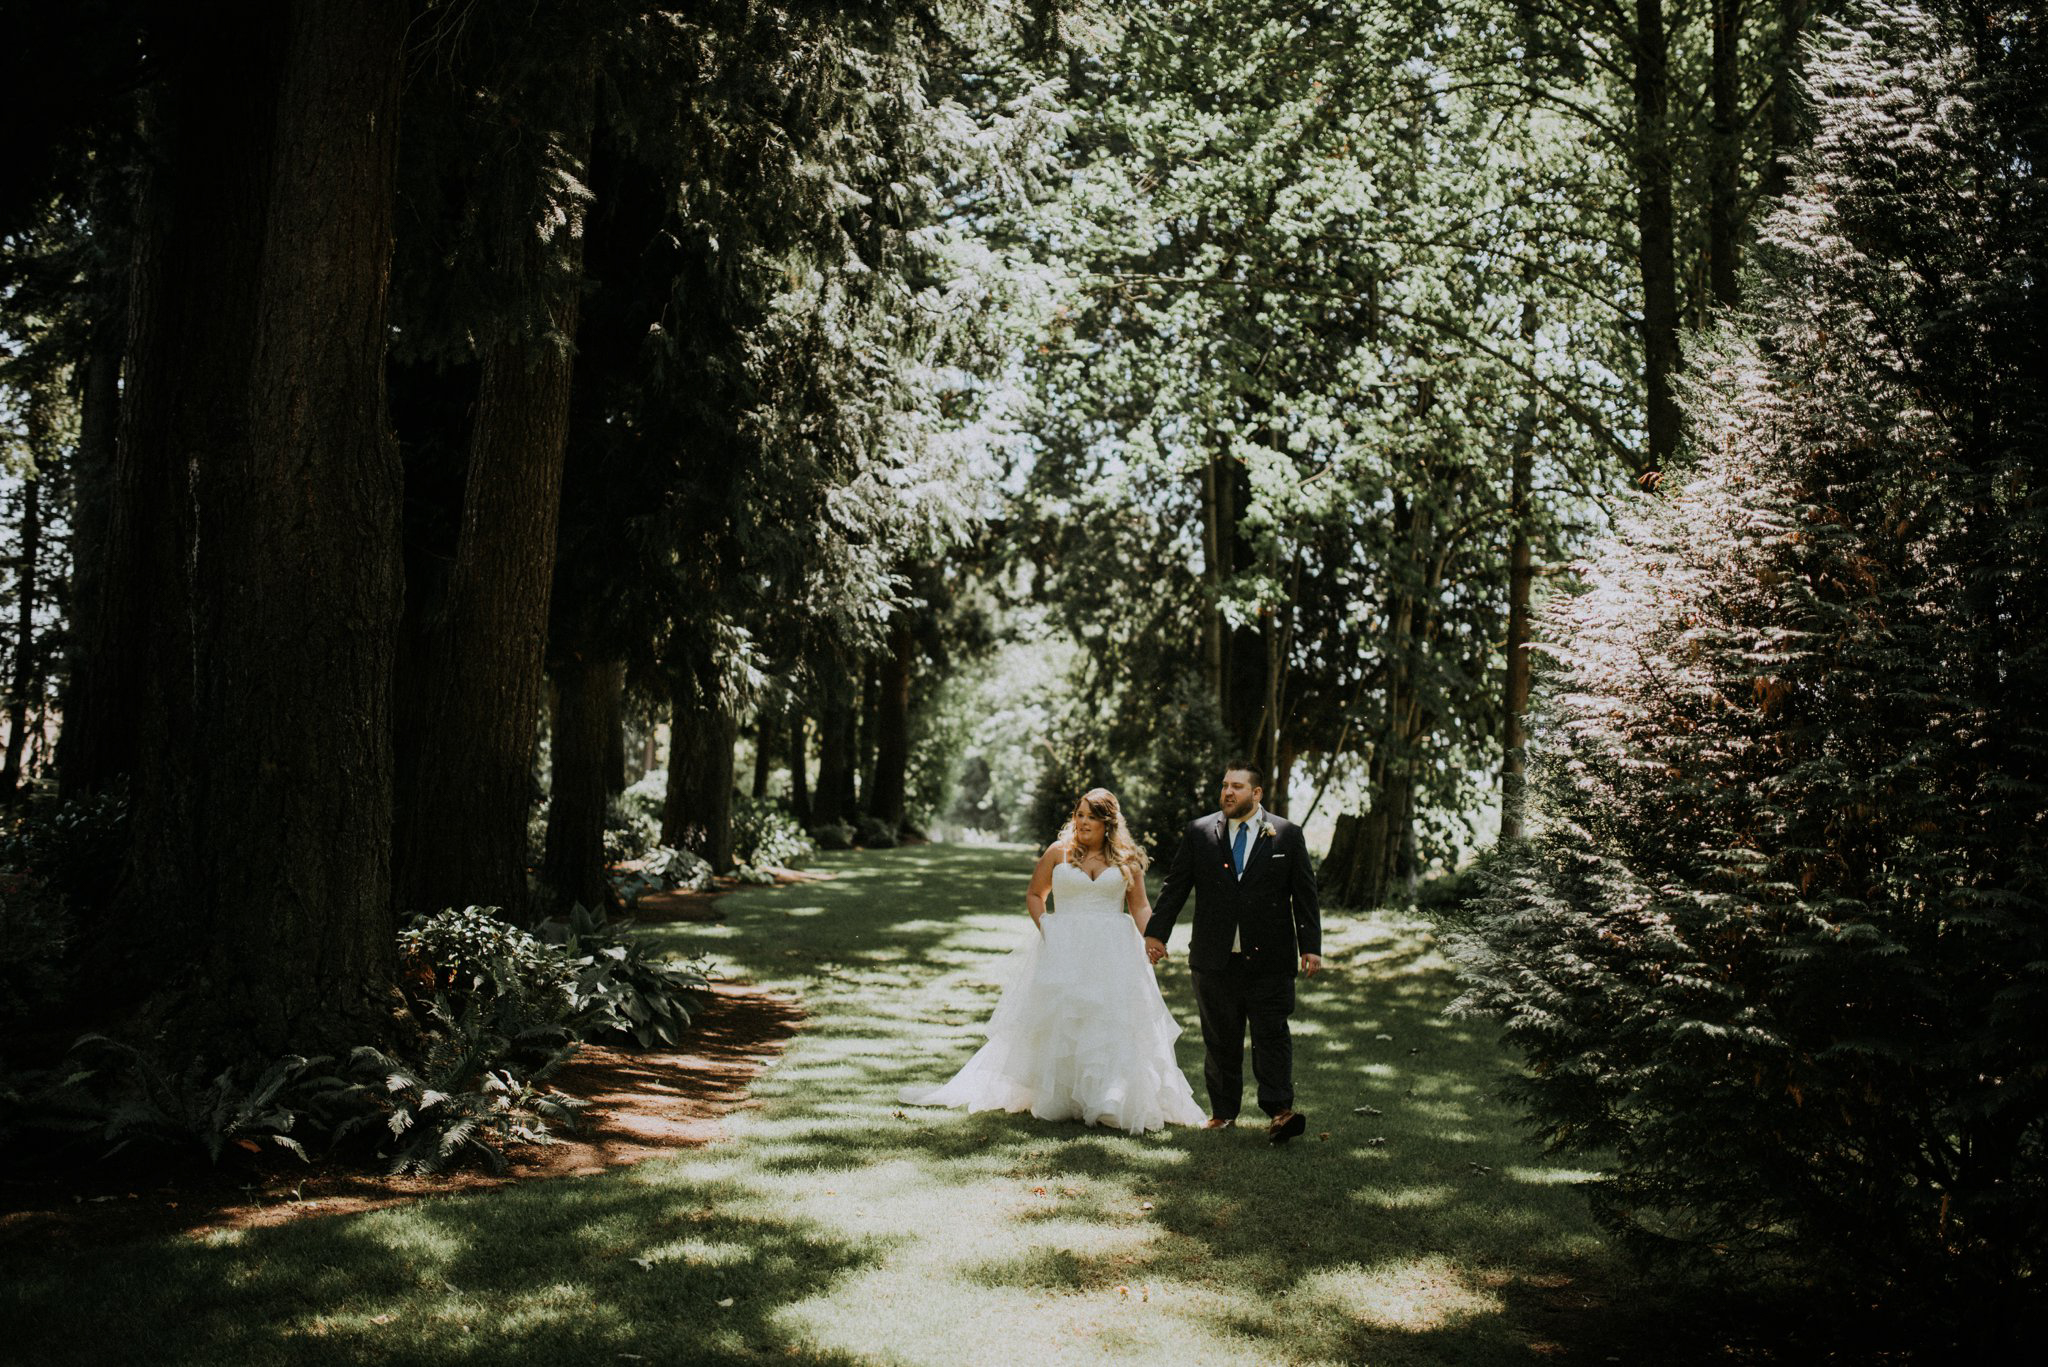 evergreen-gardens-bellingham-wedding-seattle-photographer-caitlyn-nikula-48.jpg